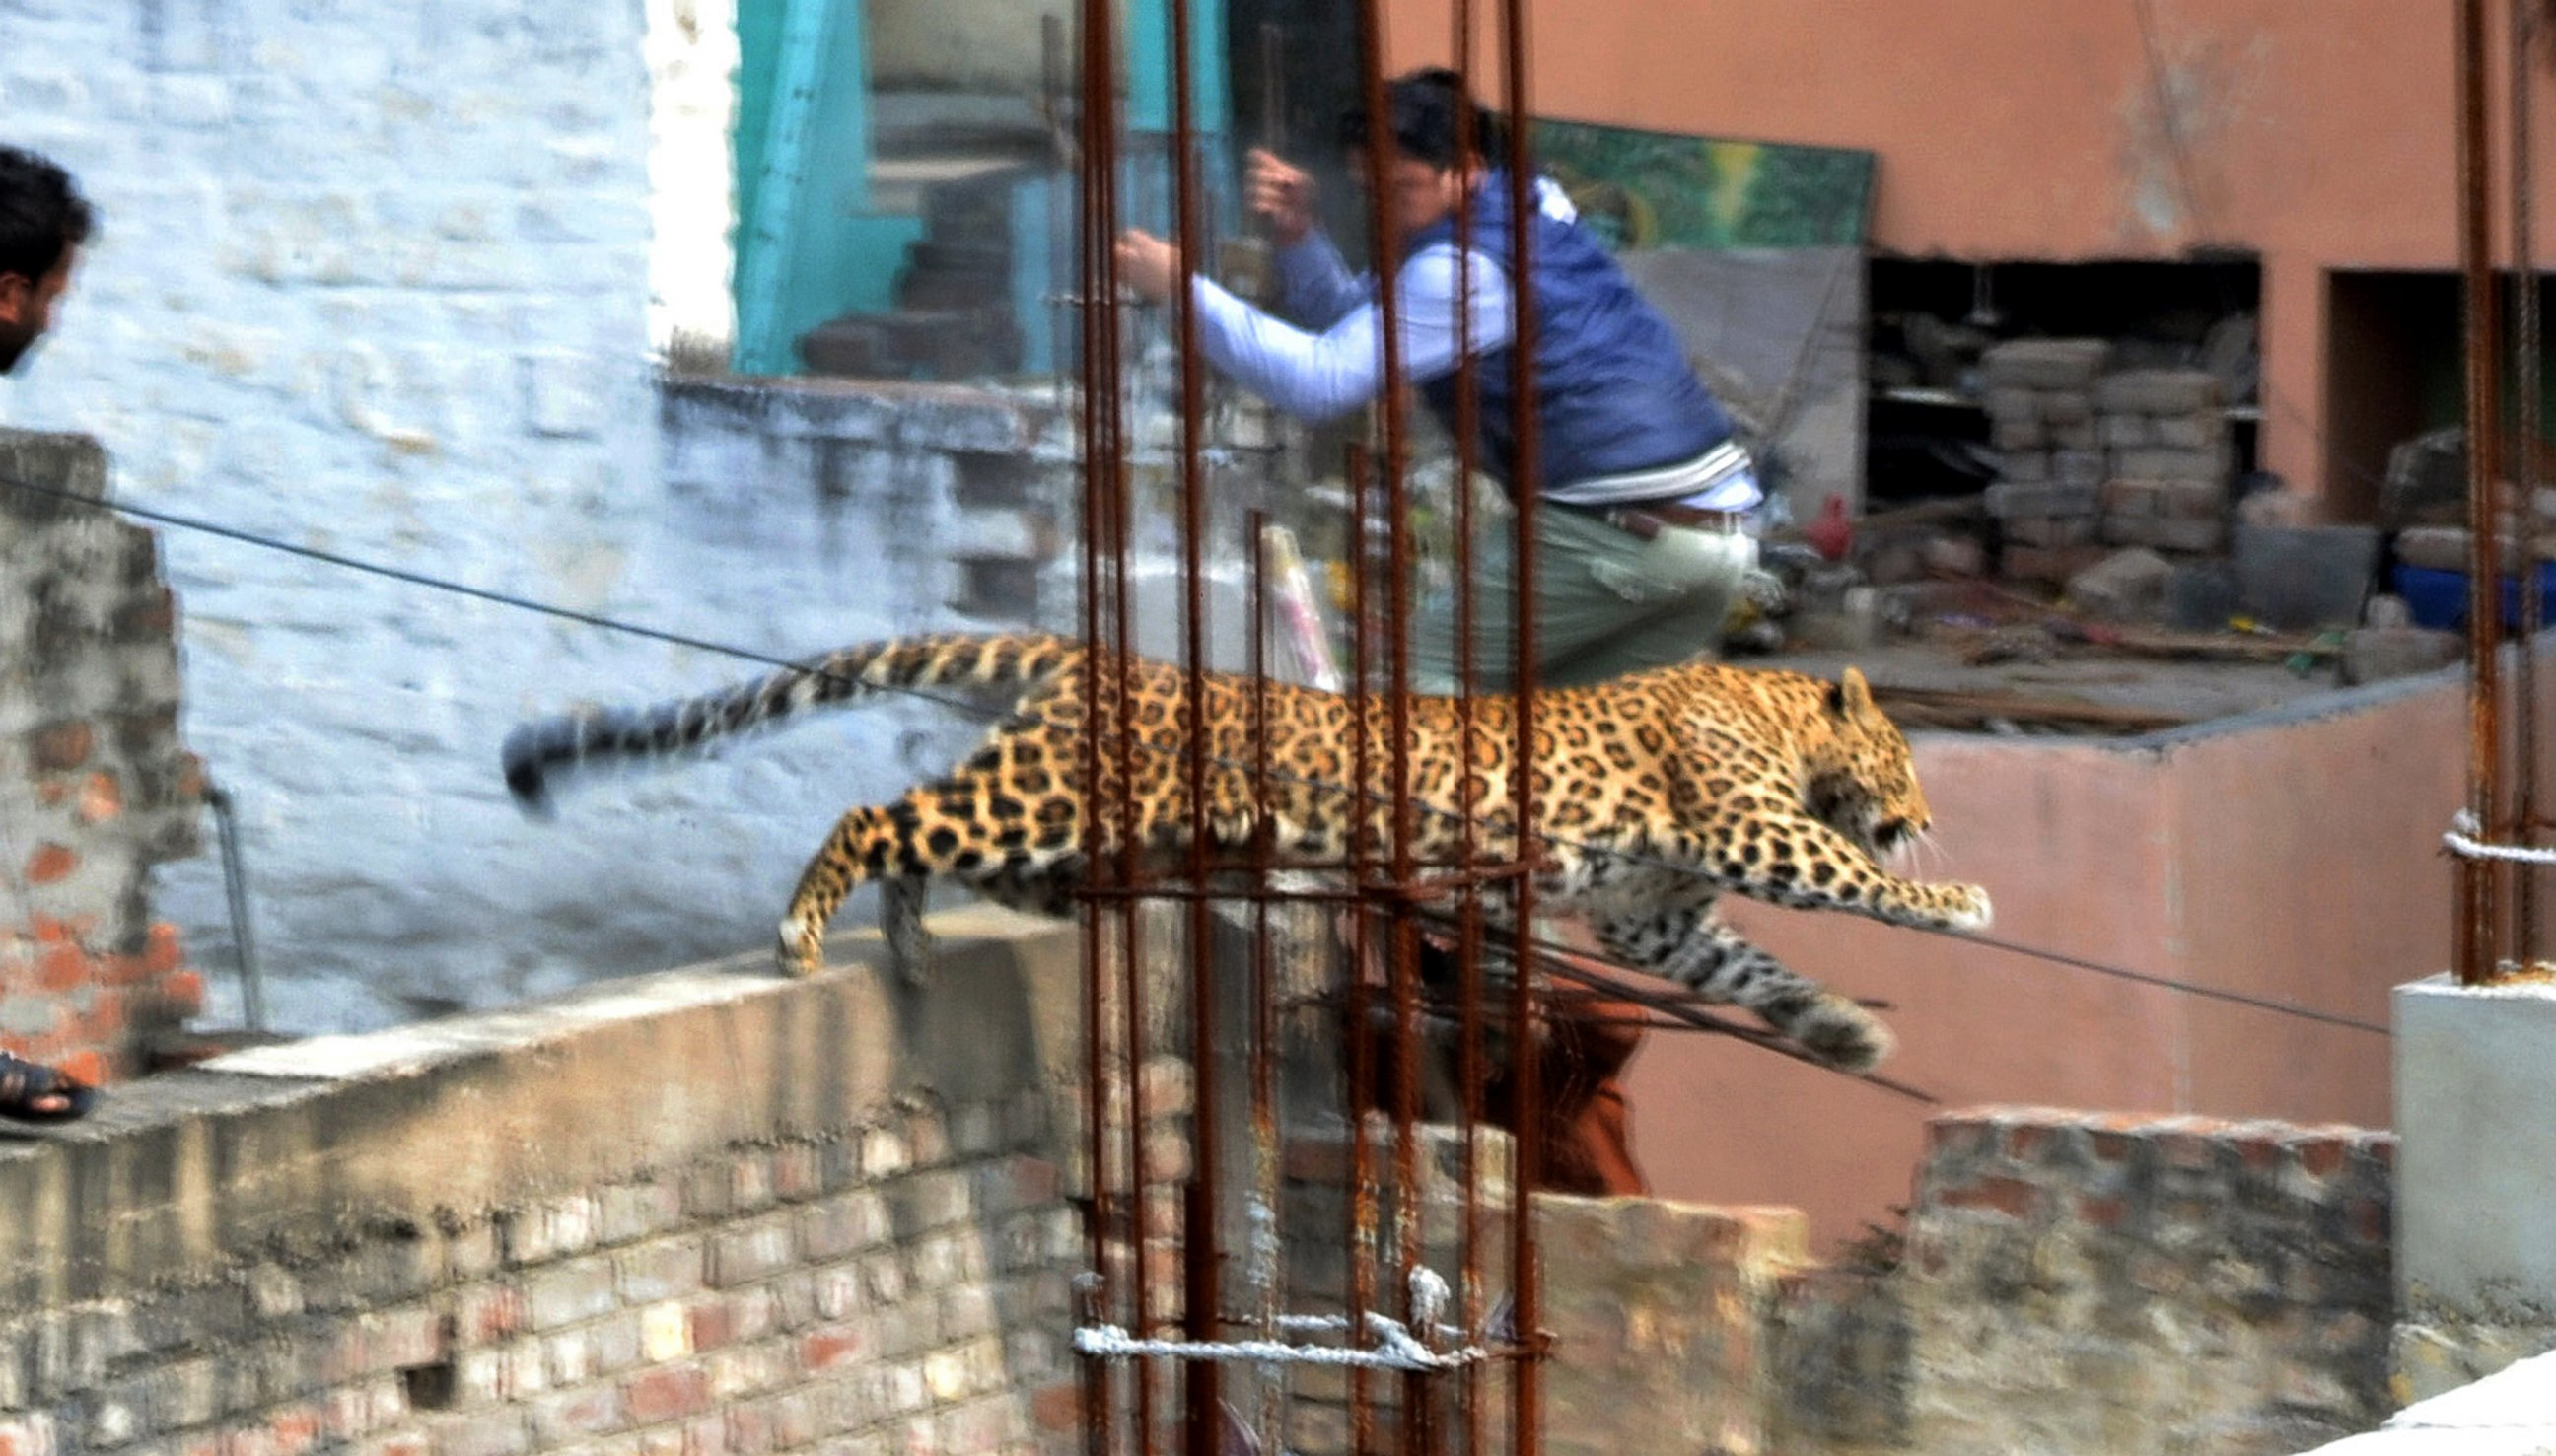 See this Leaping Leopard's High Wire Act